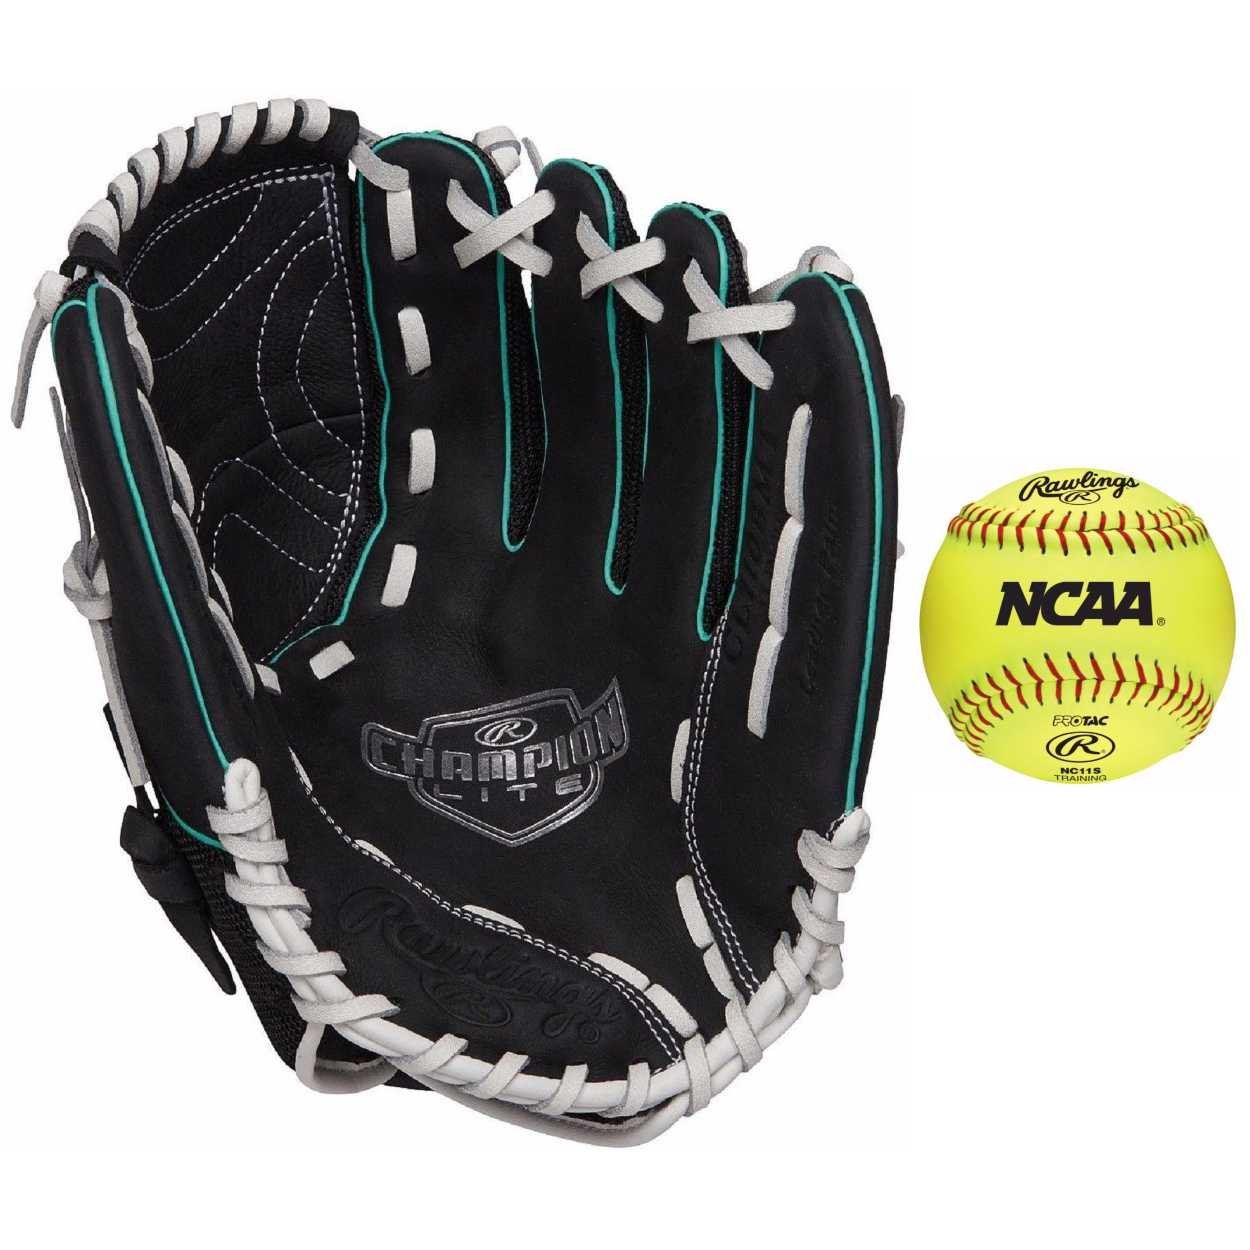 Rawlings Champion Lite 11 in Fastpitchソフトボールグローブ&ボール( Right Hand Throw ) B07B9H1N55